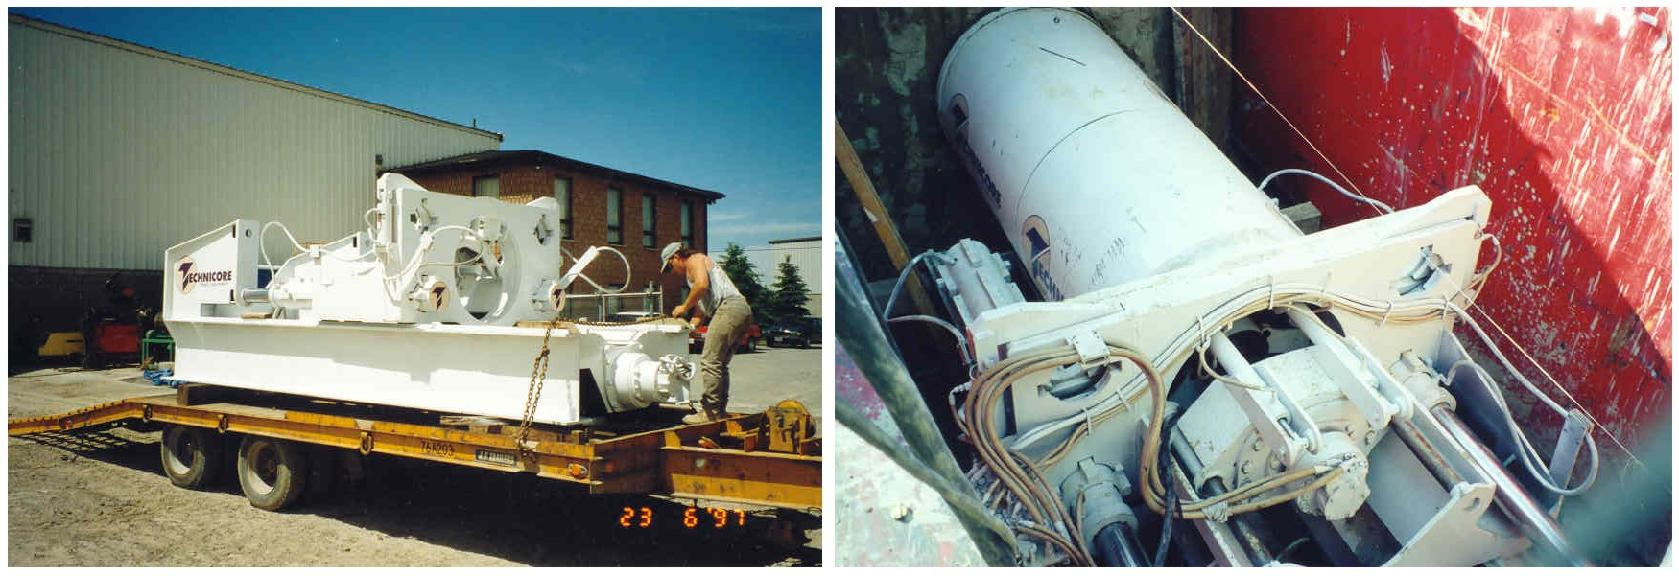 46 Inch Dia Micro Tunneling Machine with Jacking System